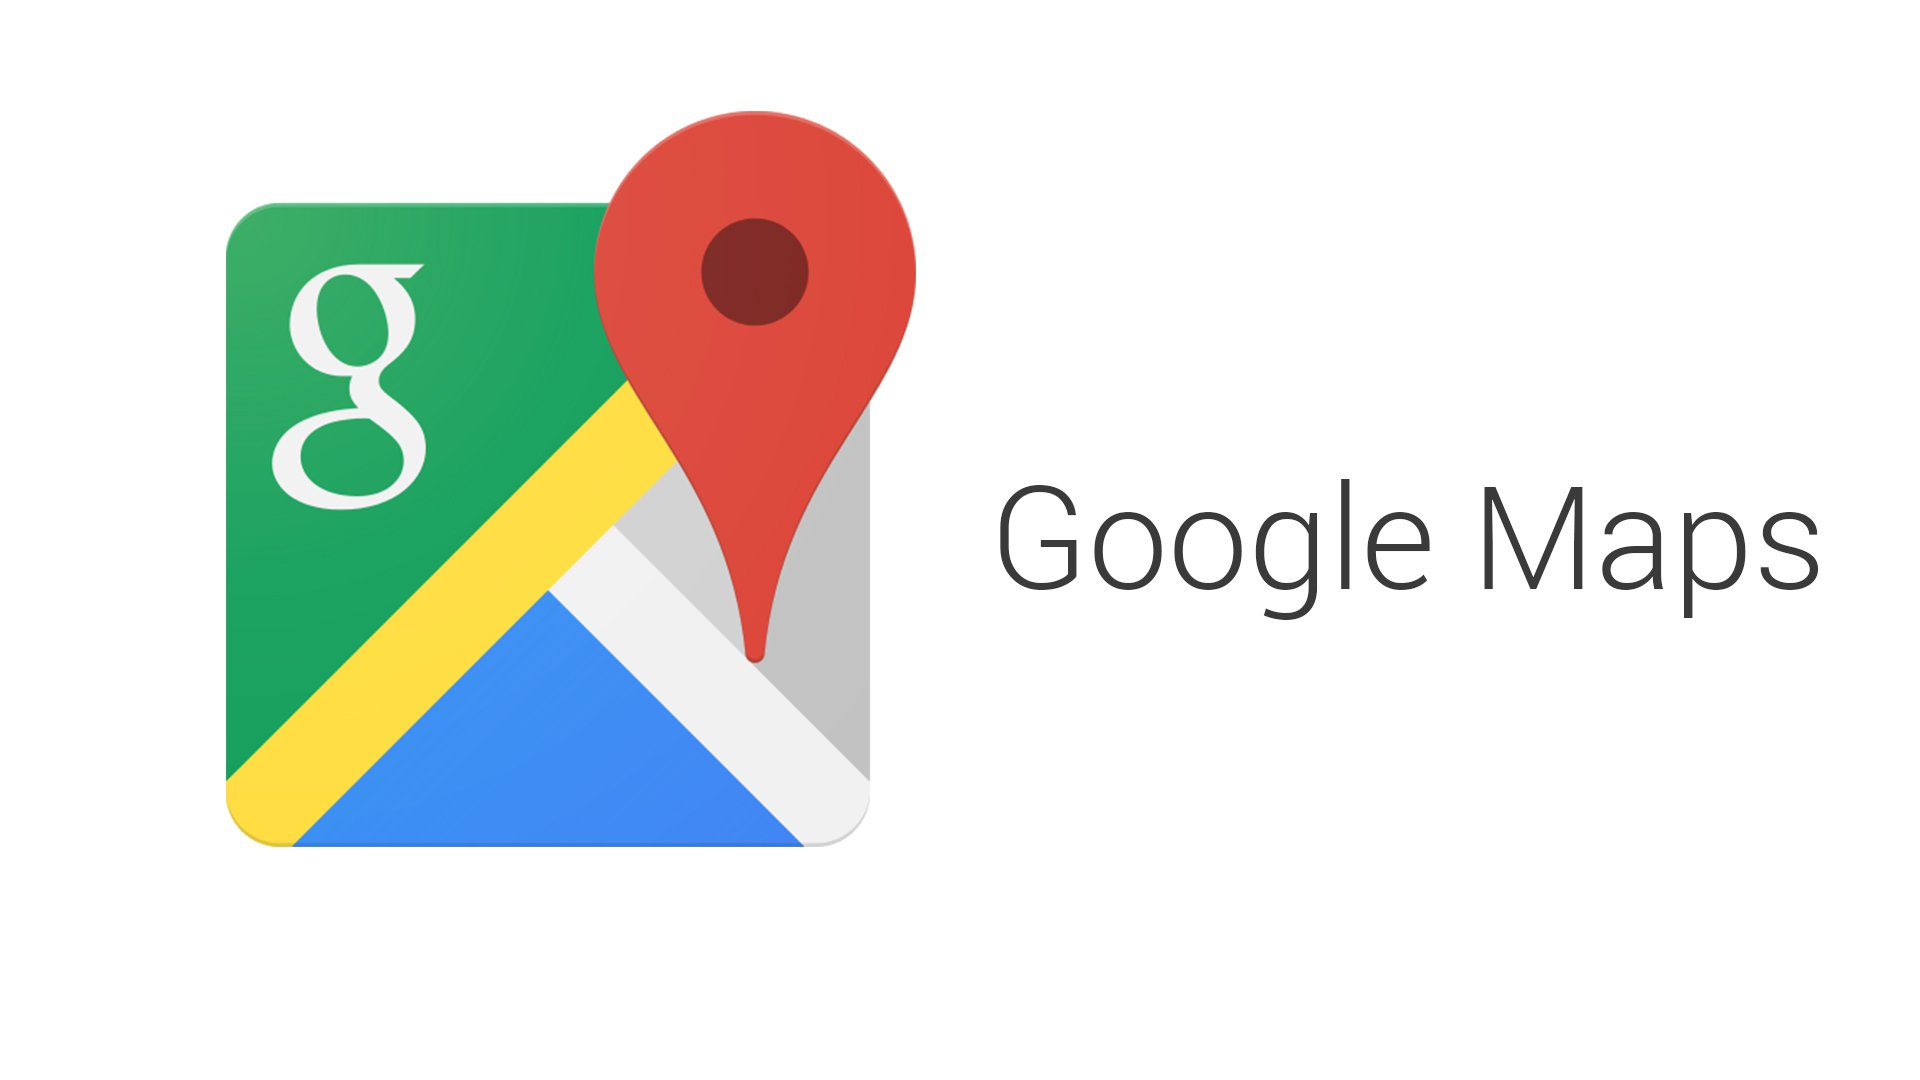 Google Maps to offer real-time notifications on transit mode soon: Report